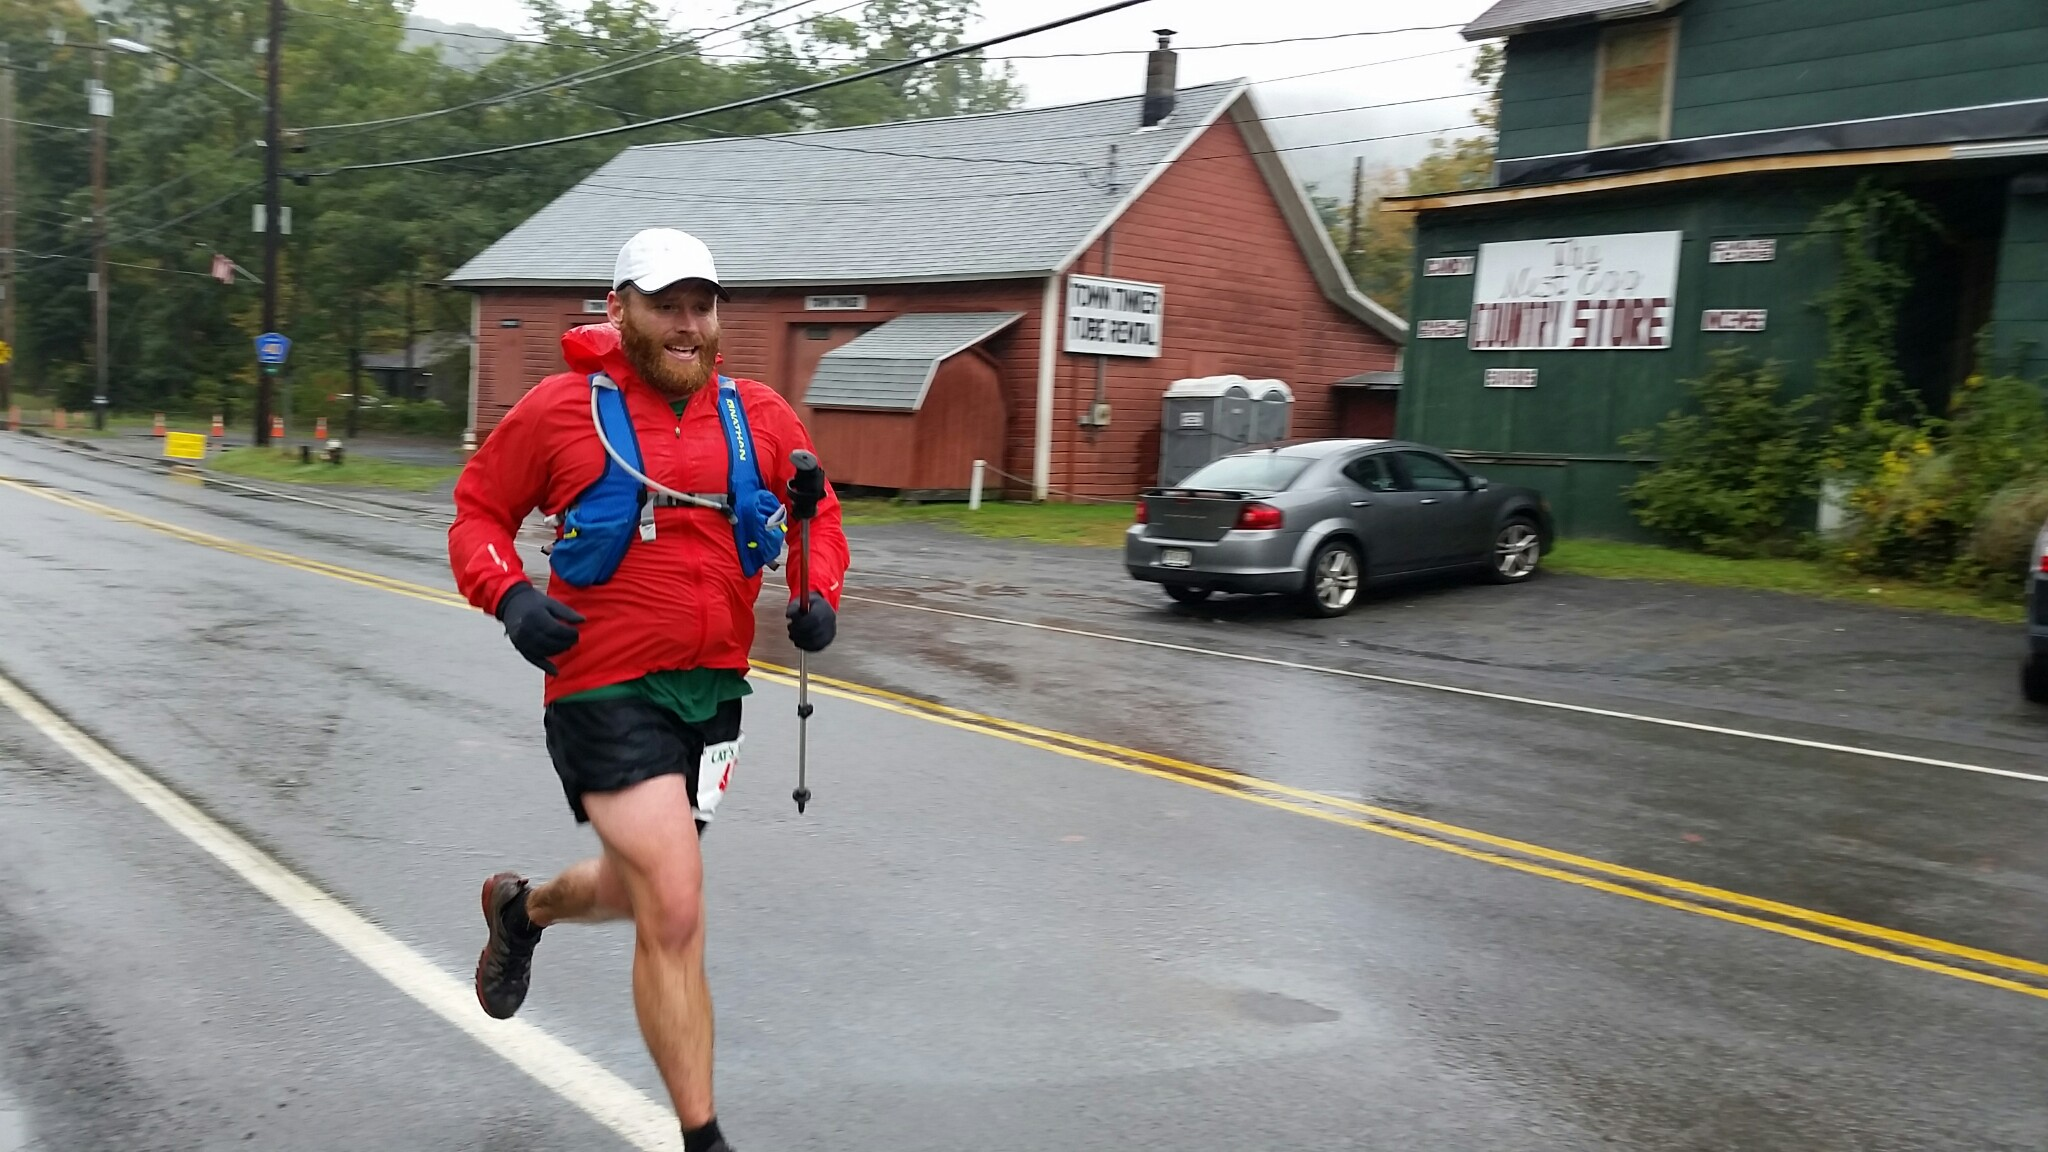 Adam Moody finishing the cat's tail trail marathon 2015